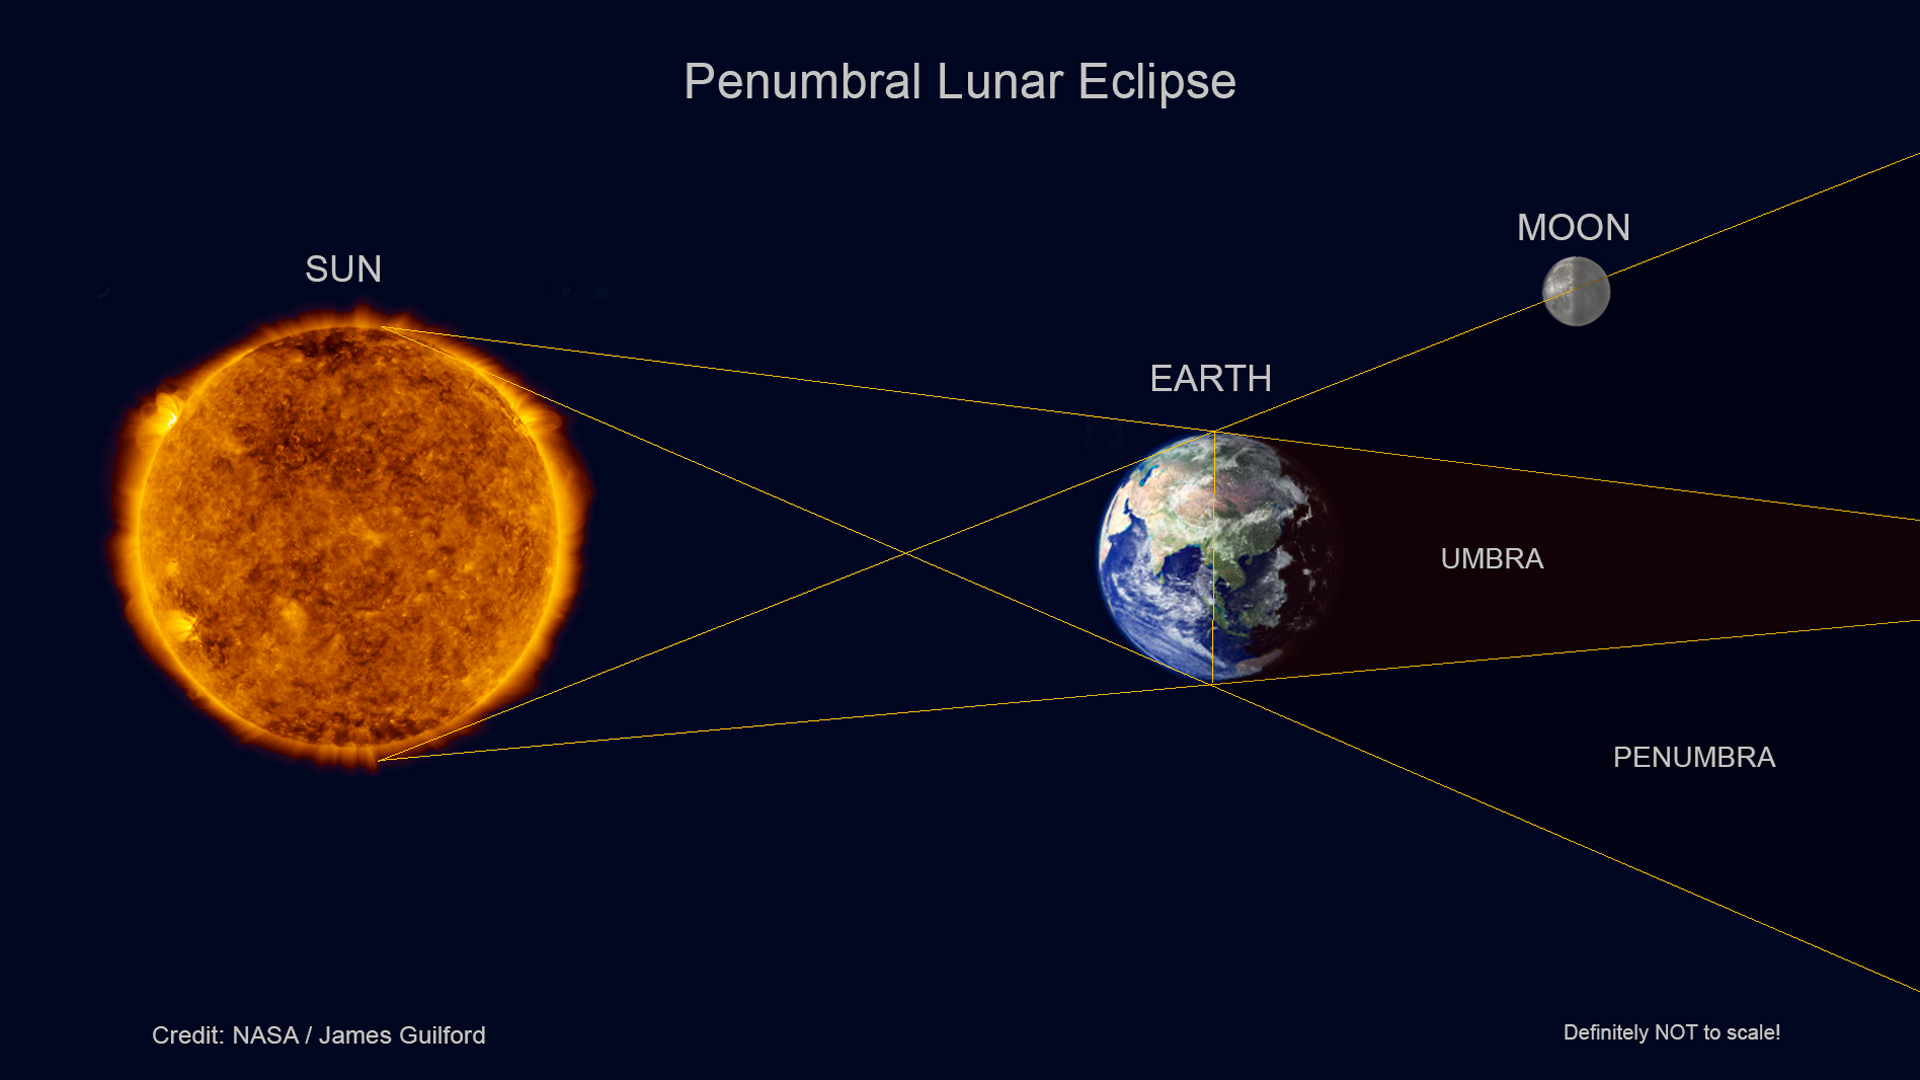 Penumbral Lunar Eclipse. NASA Solar and Earth images, illustration by James Guilford.